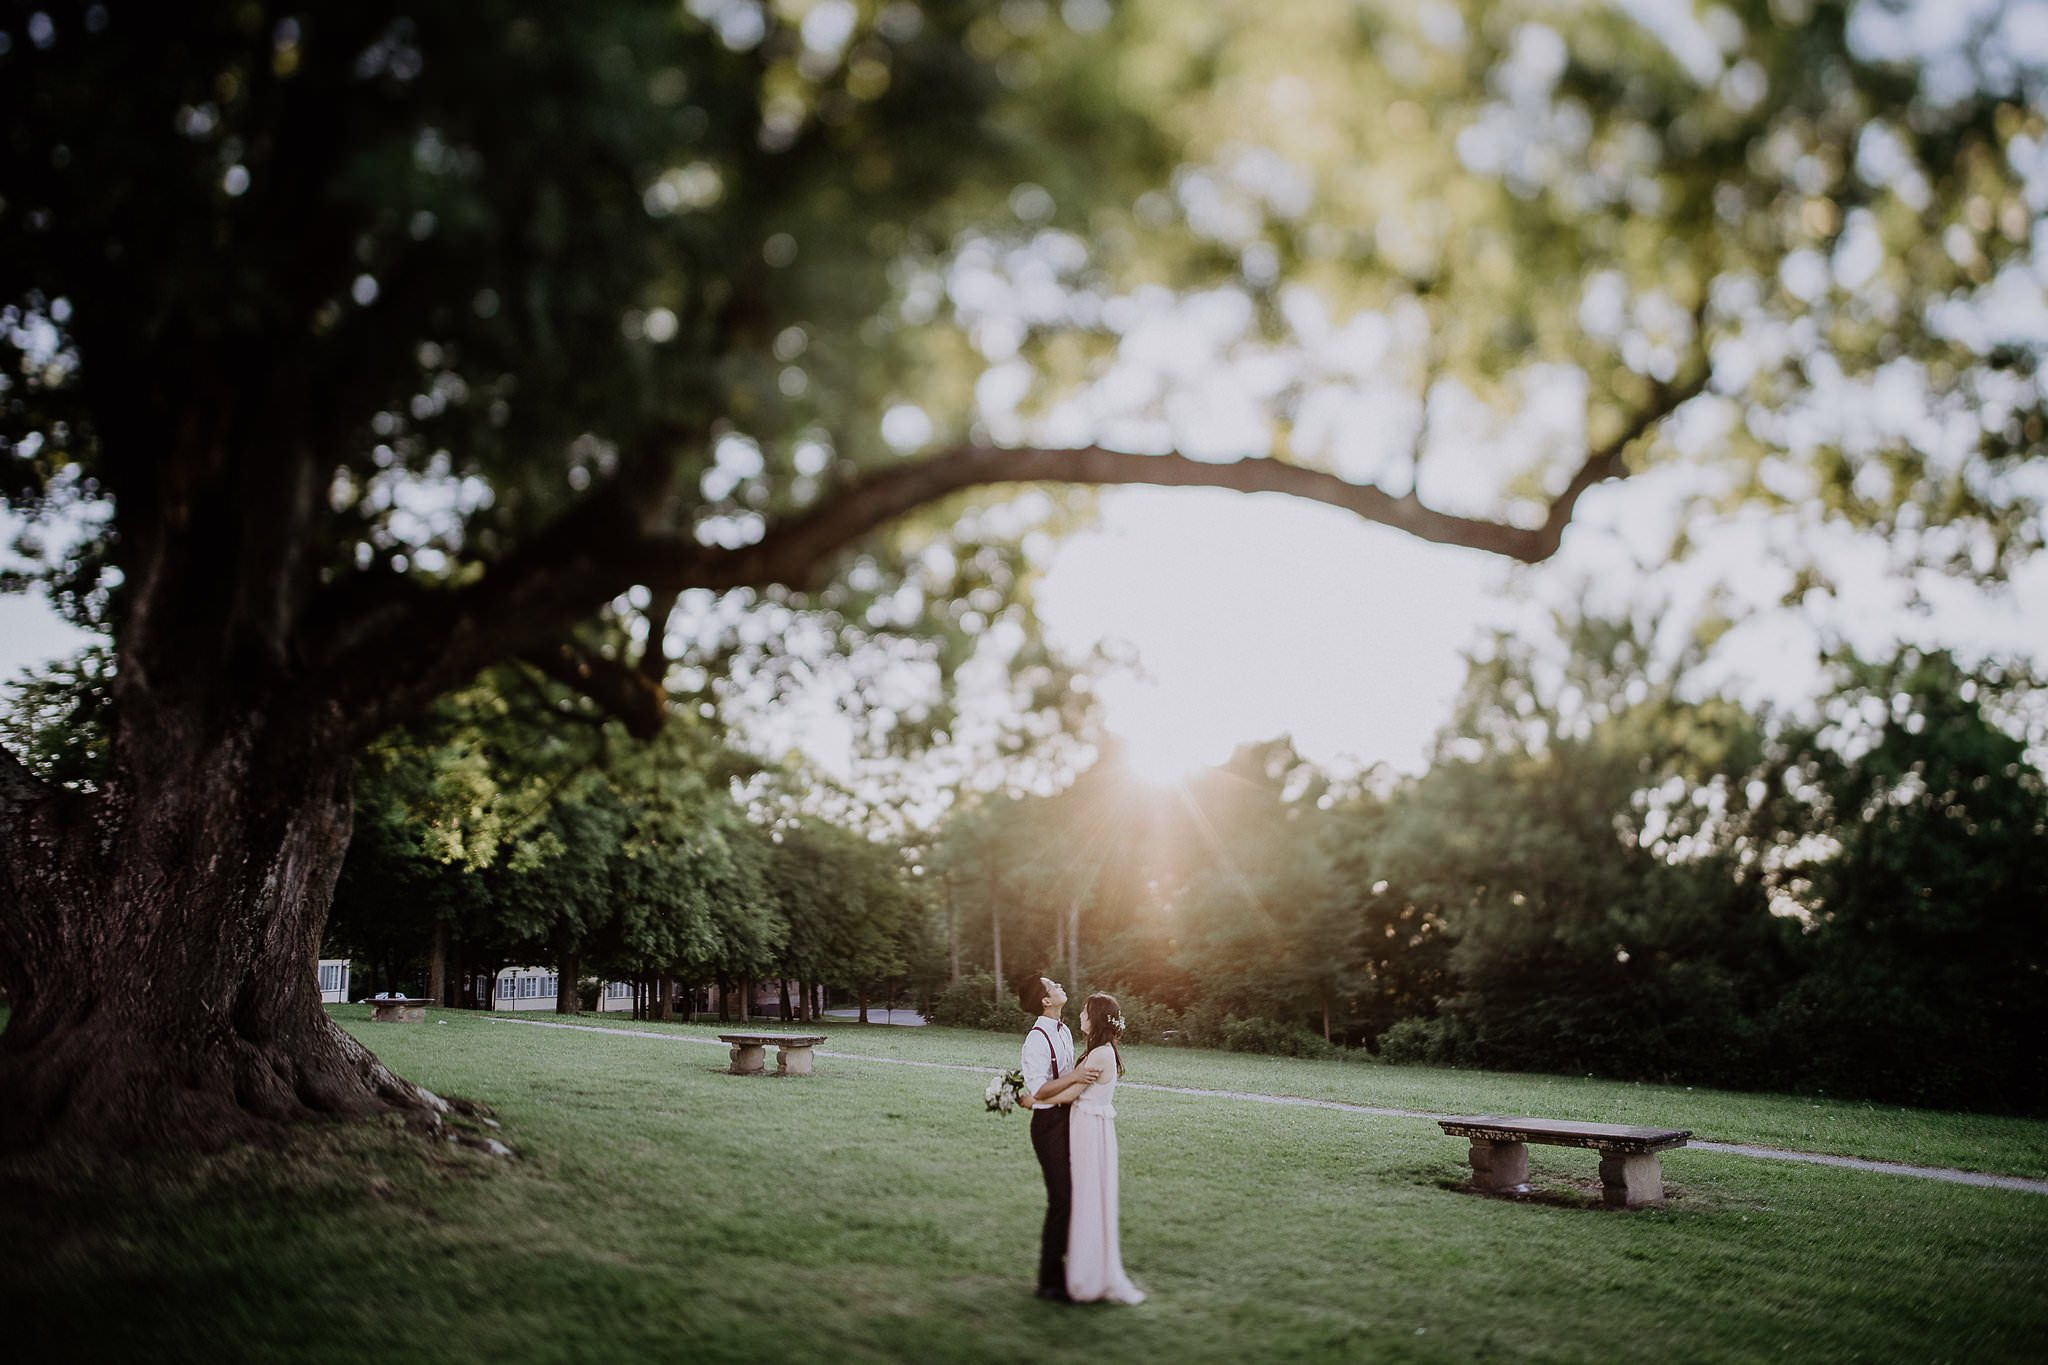 wedding photographer hamilton new zealand 1015 6